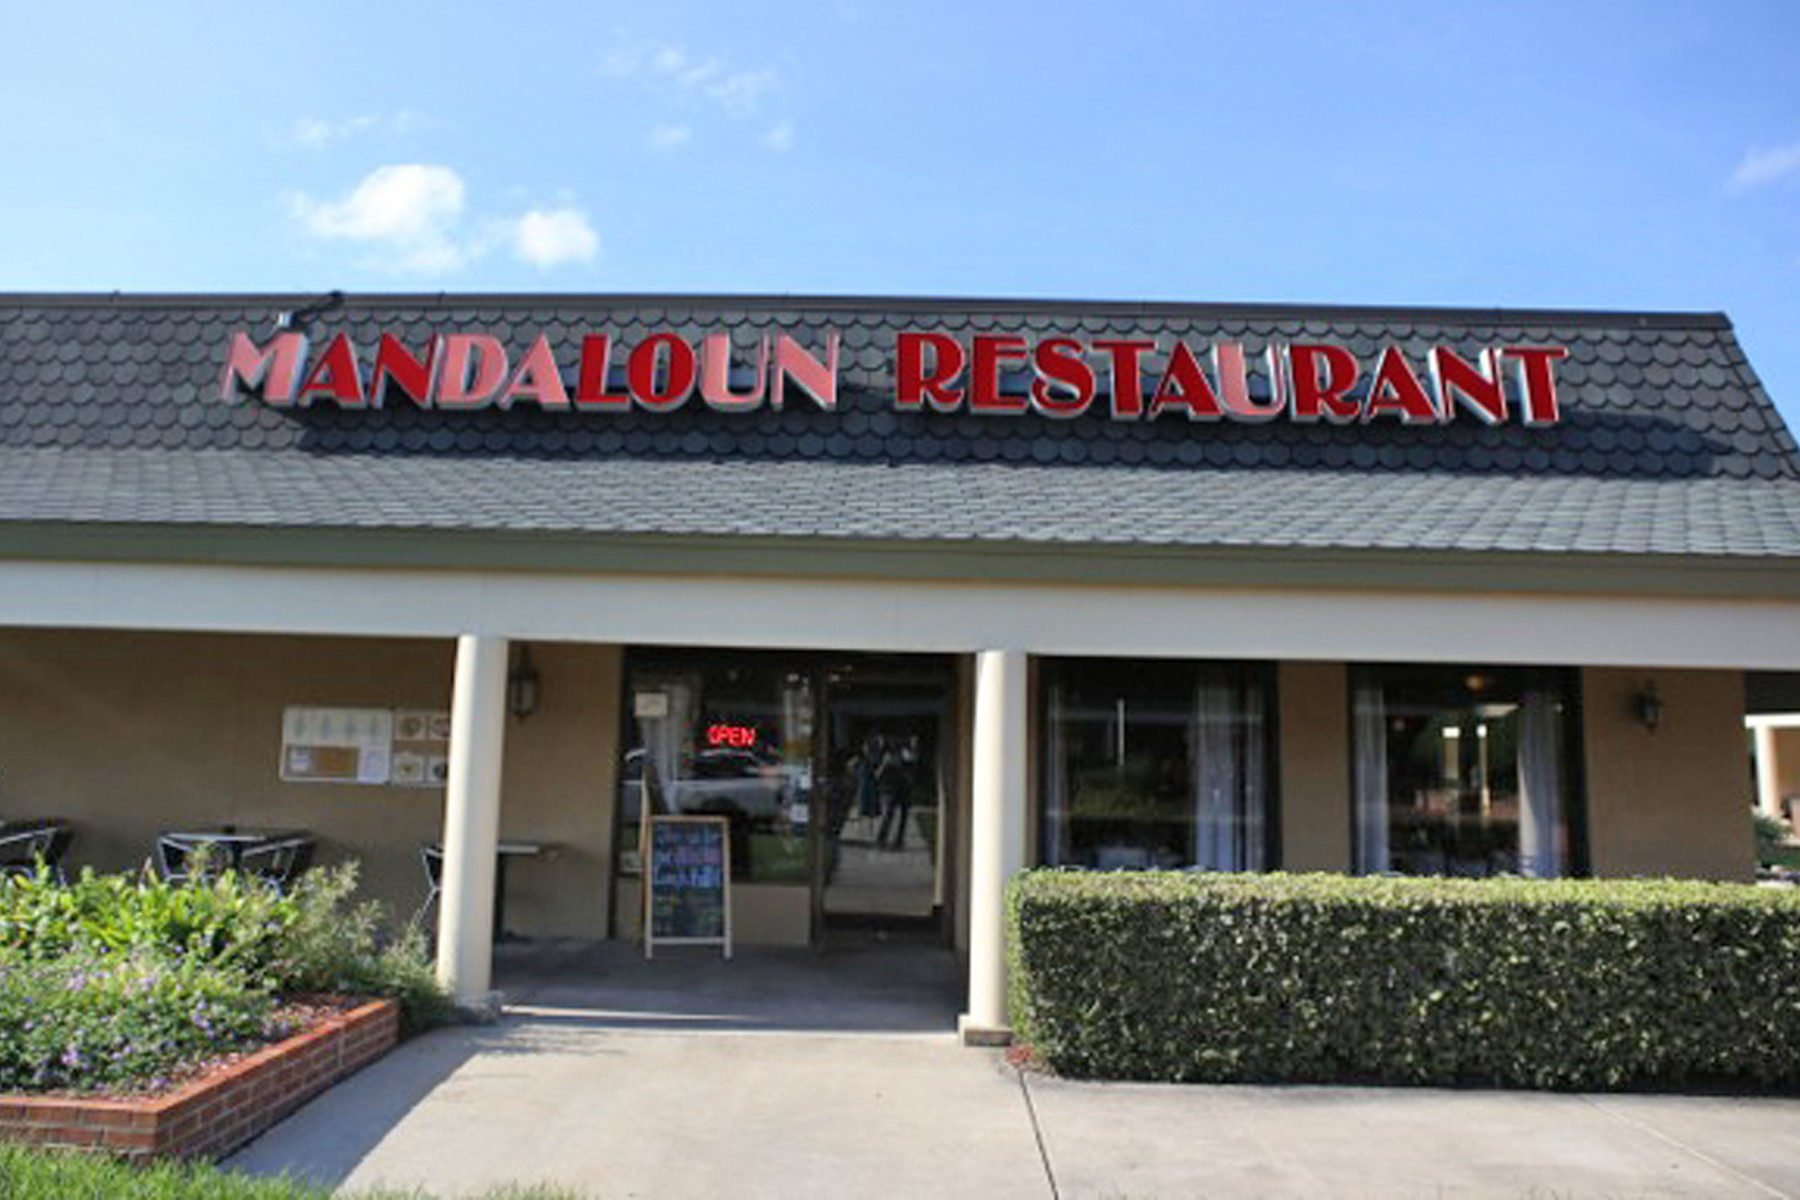 Located in Deerwood Village Shopping Center near the intersection of Southside and Baymeadows, Mandaloun offers ample parking and indoor and outdoor seating.